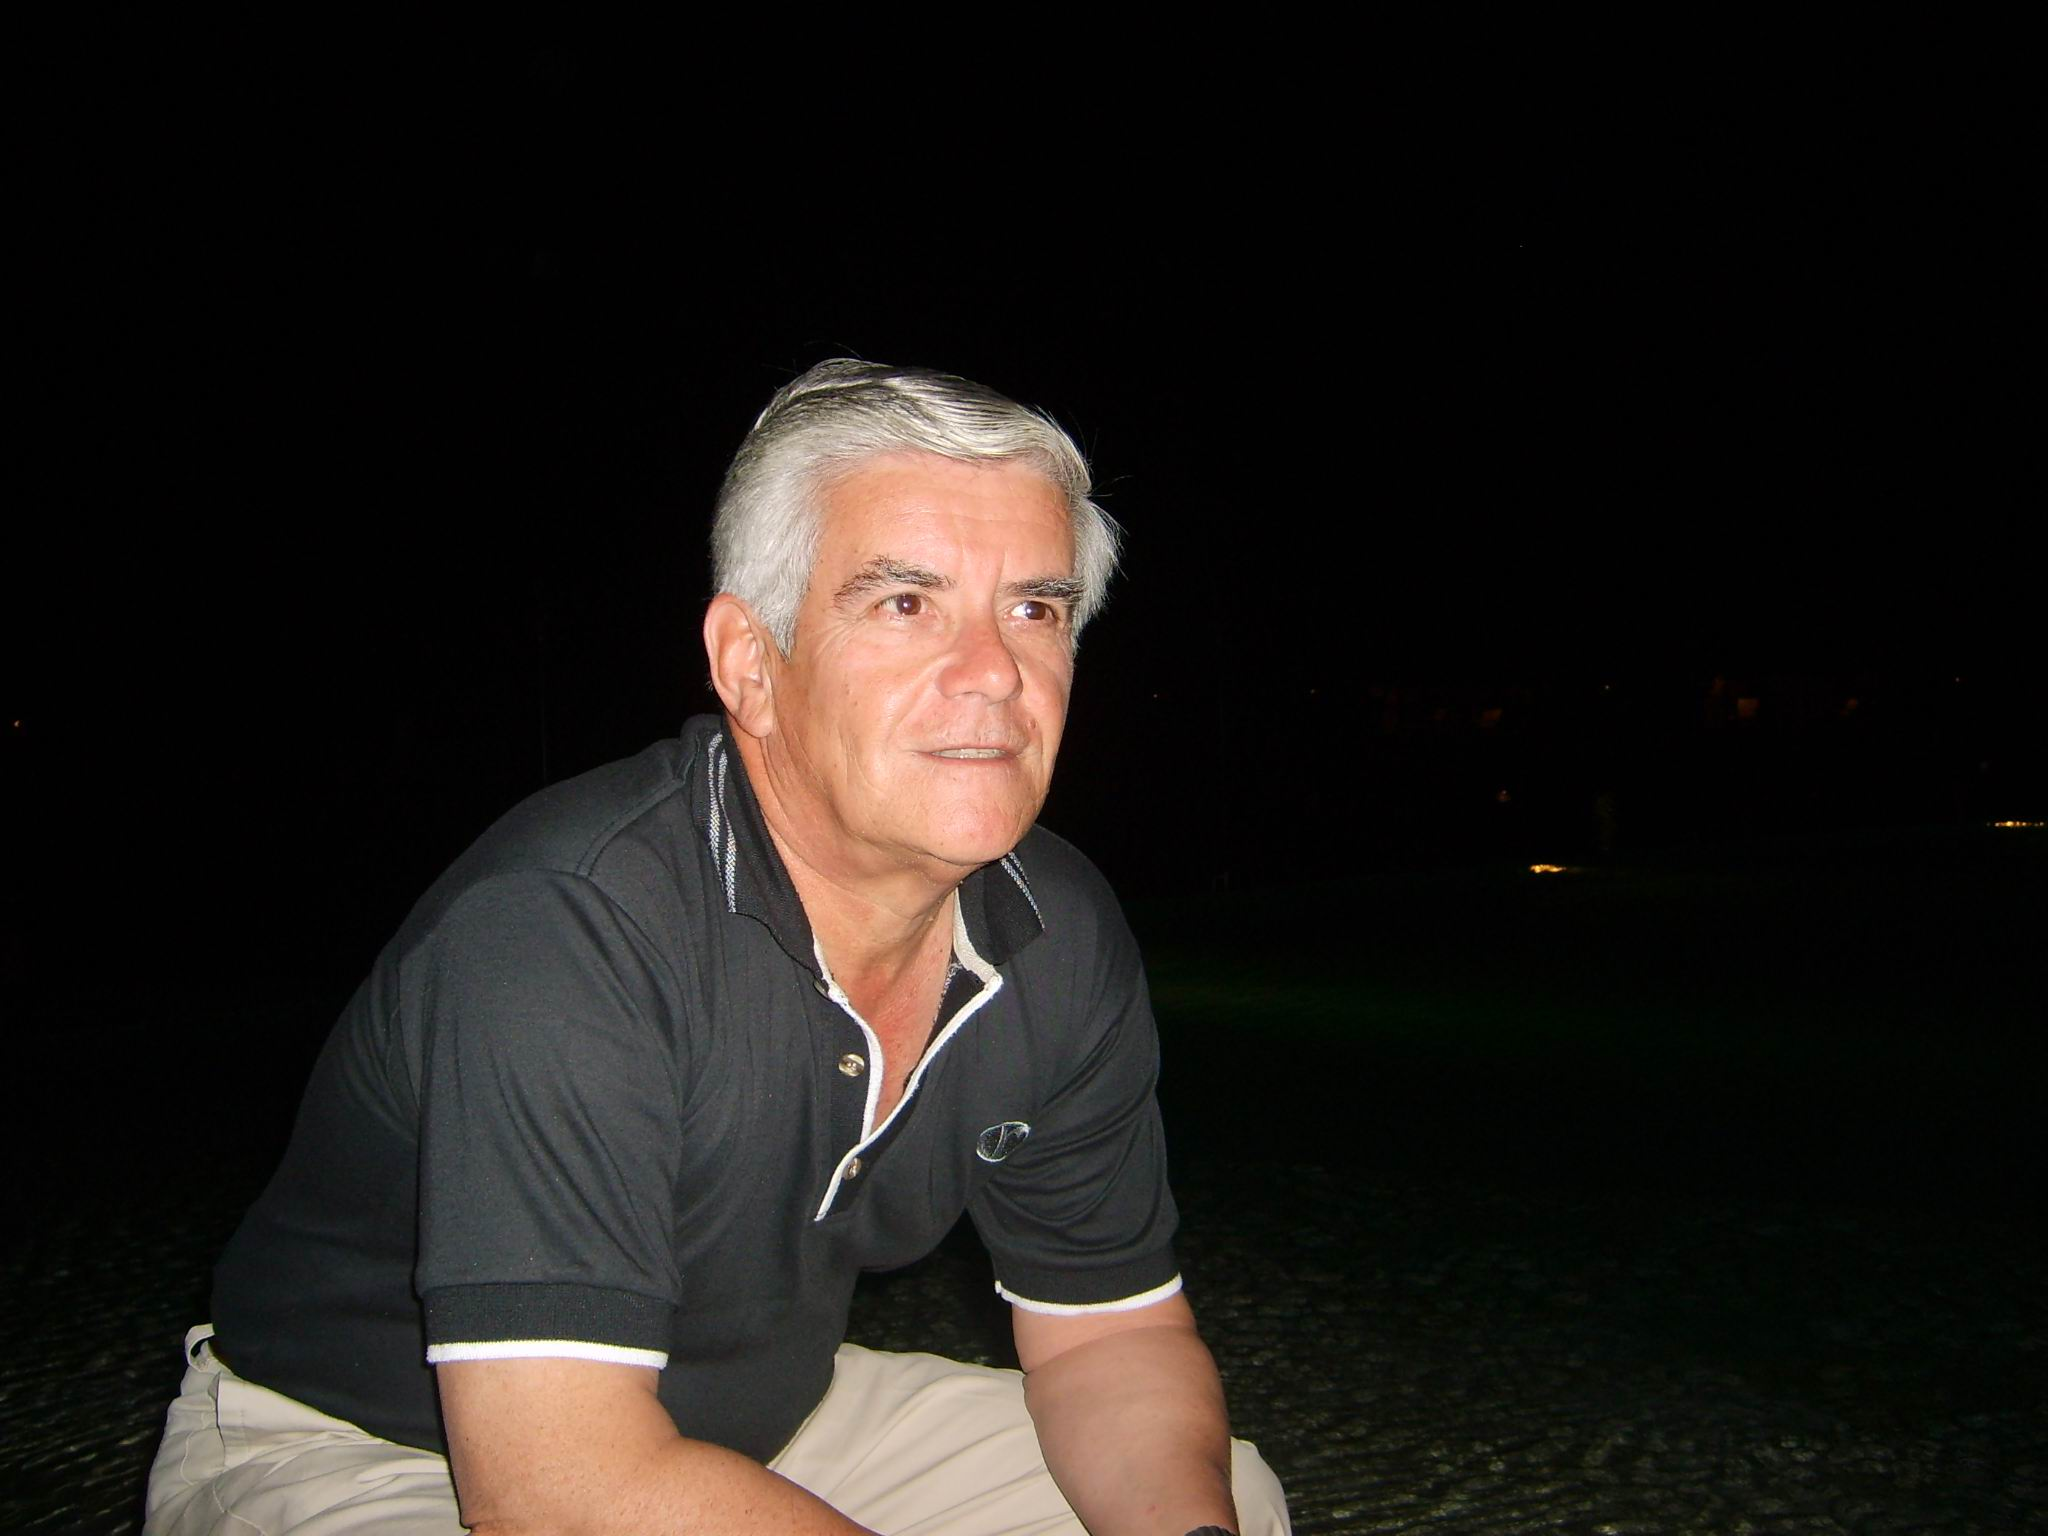 Hector Monje